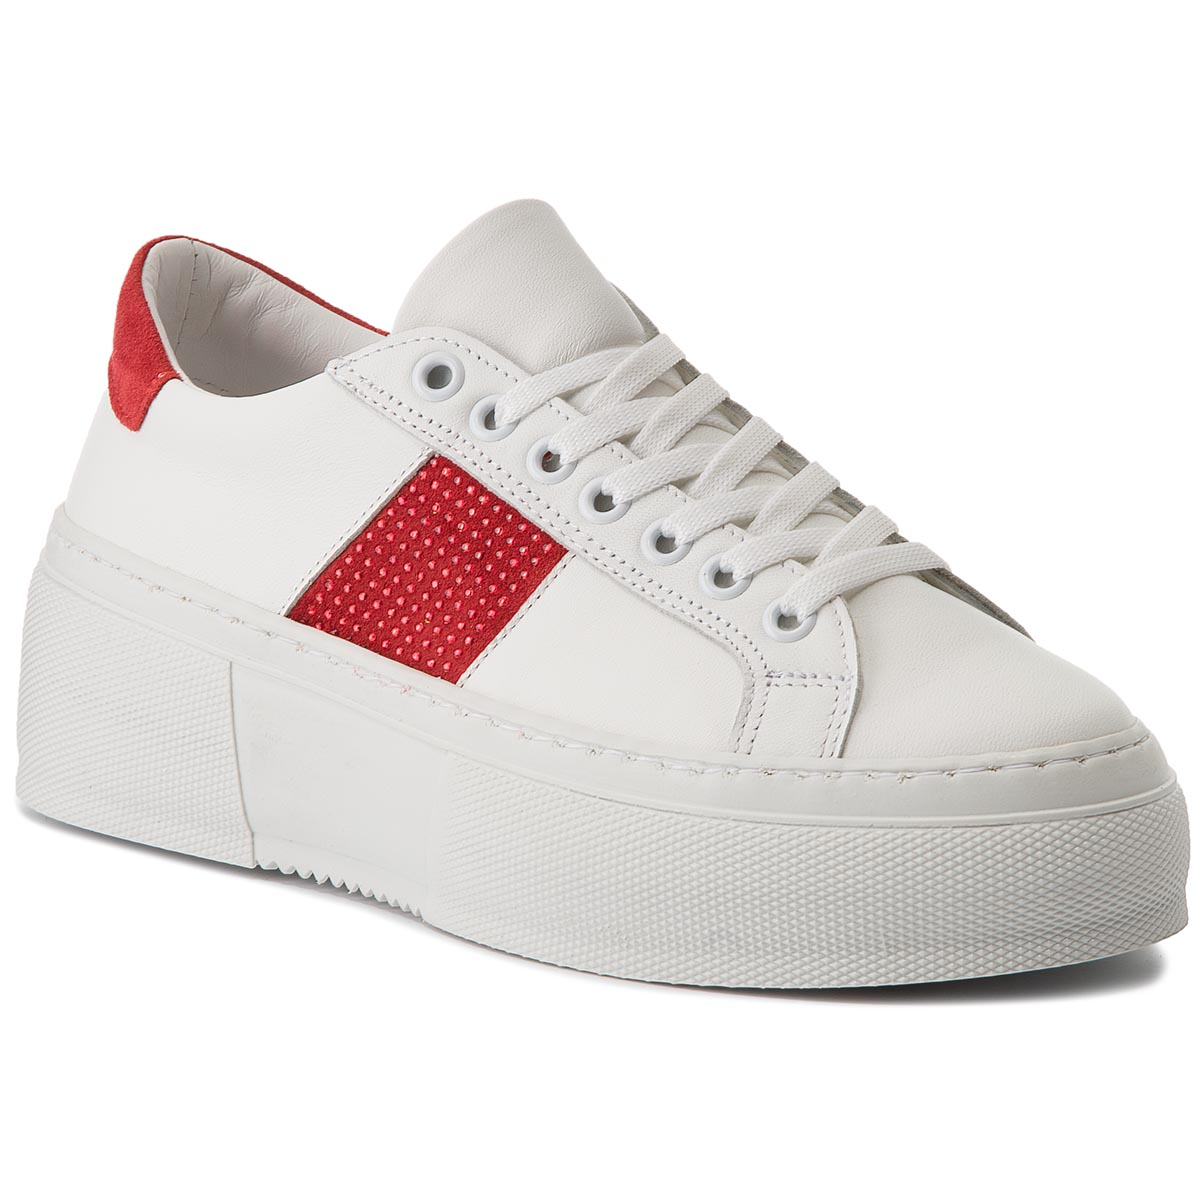 Sneakersy BRONX - 66189-A BSAHARX White/Red 2065